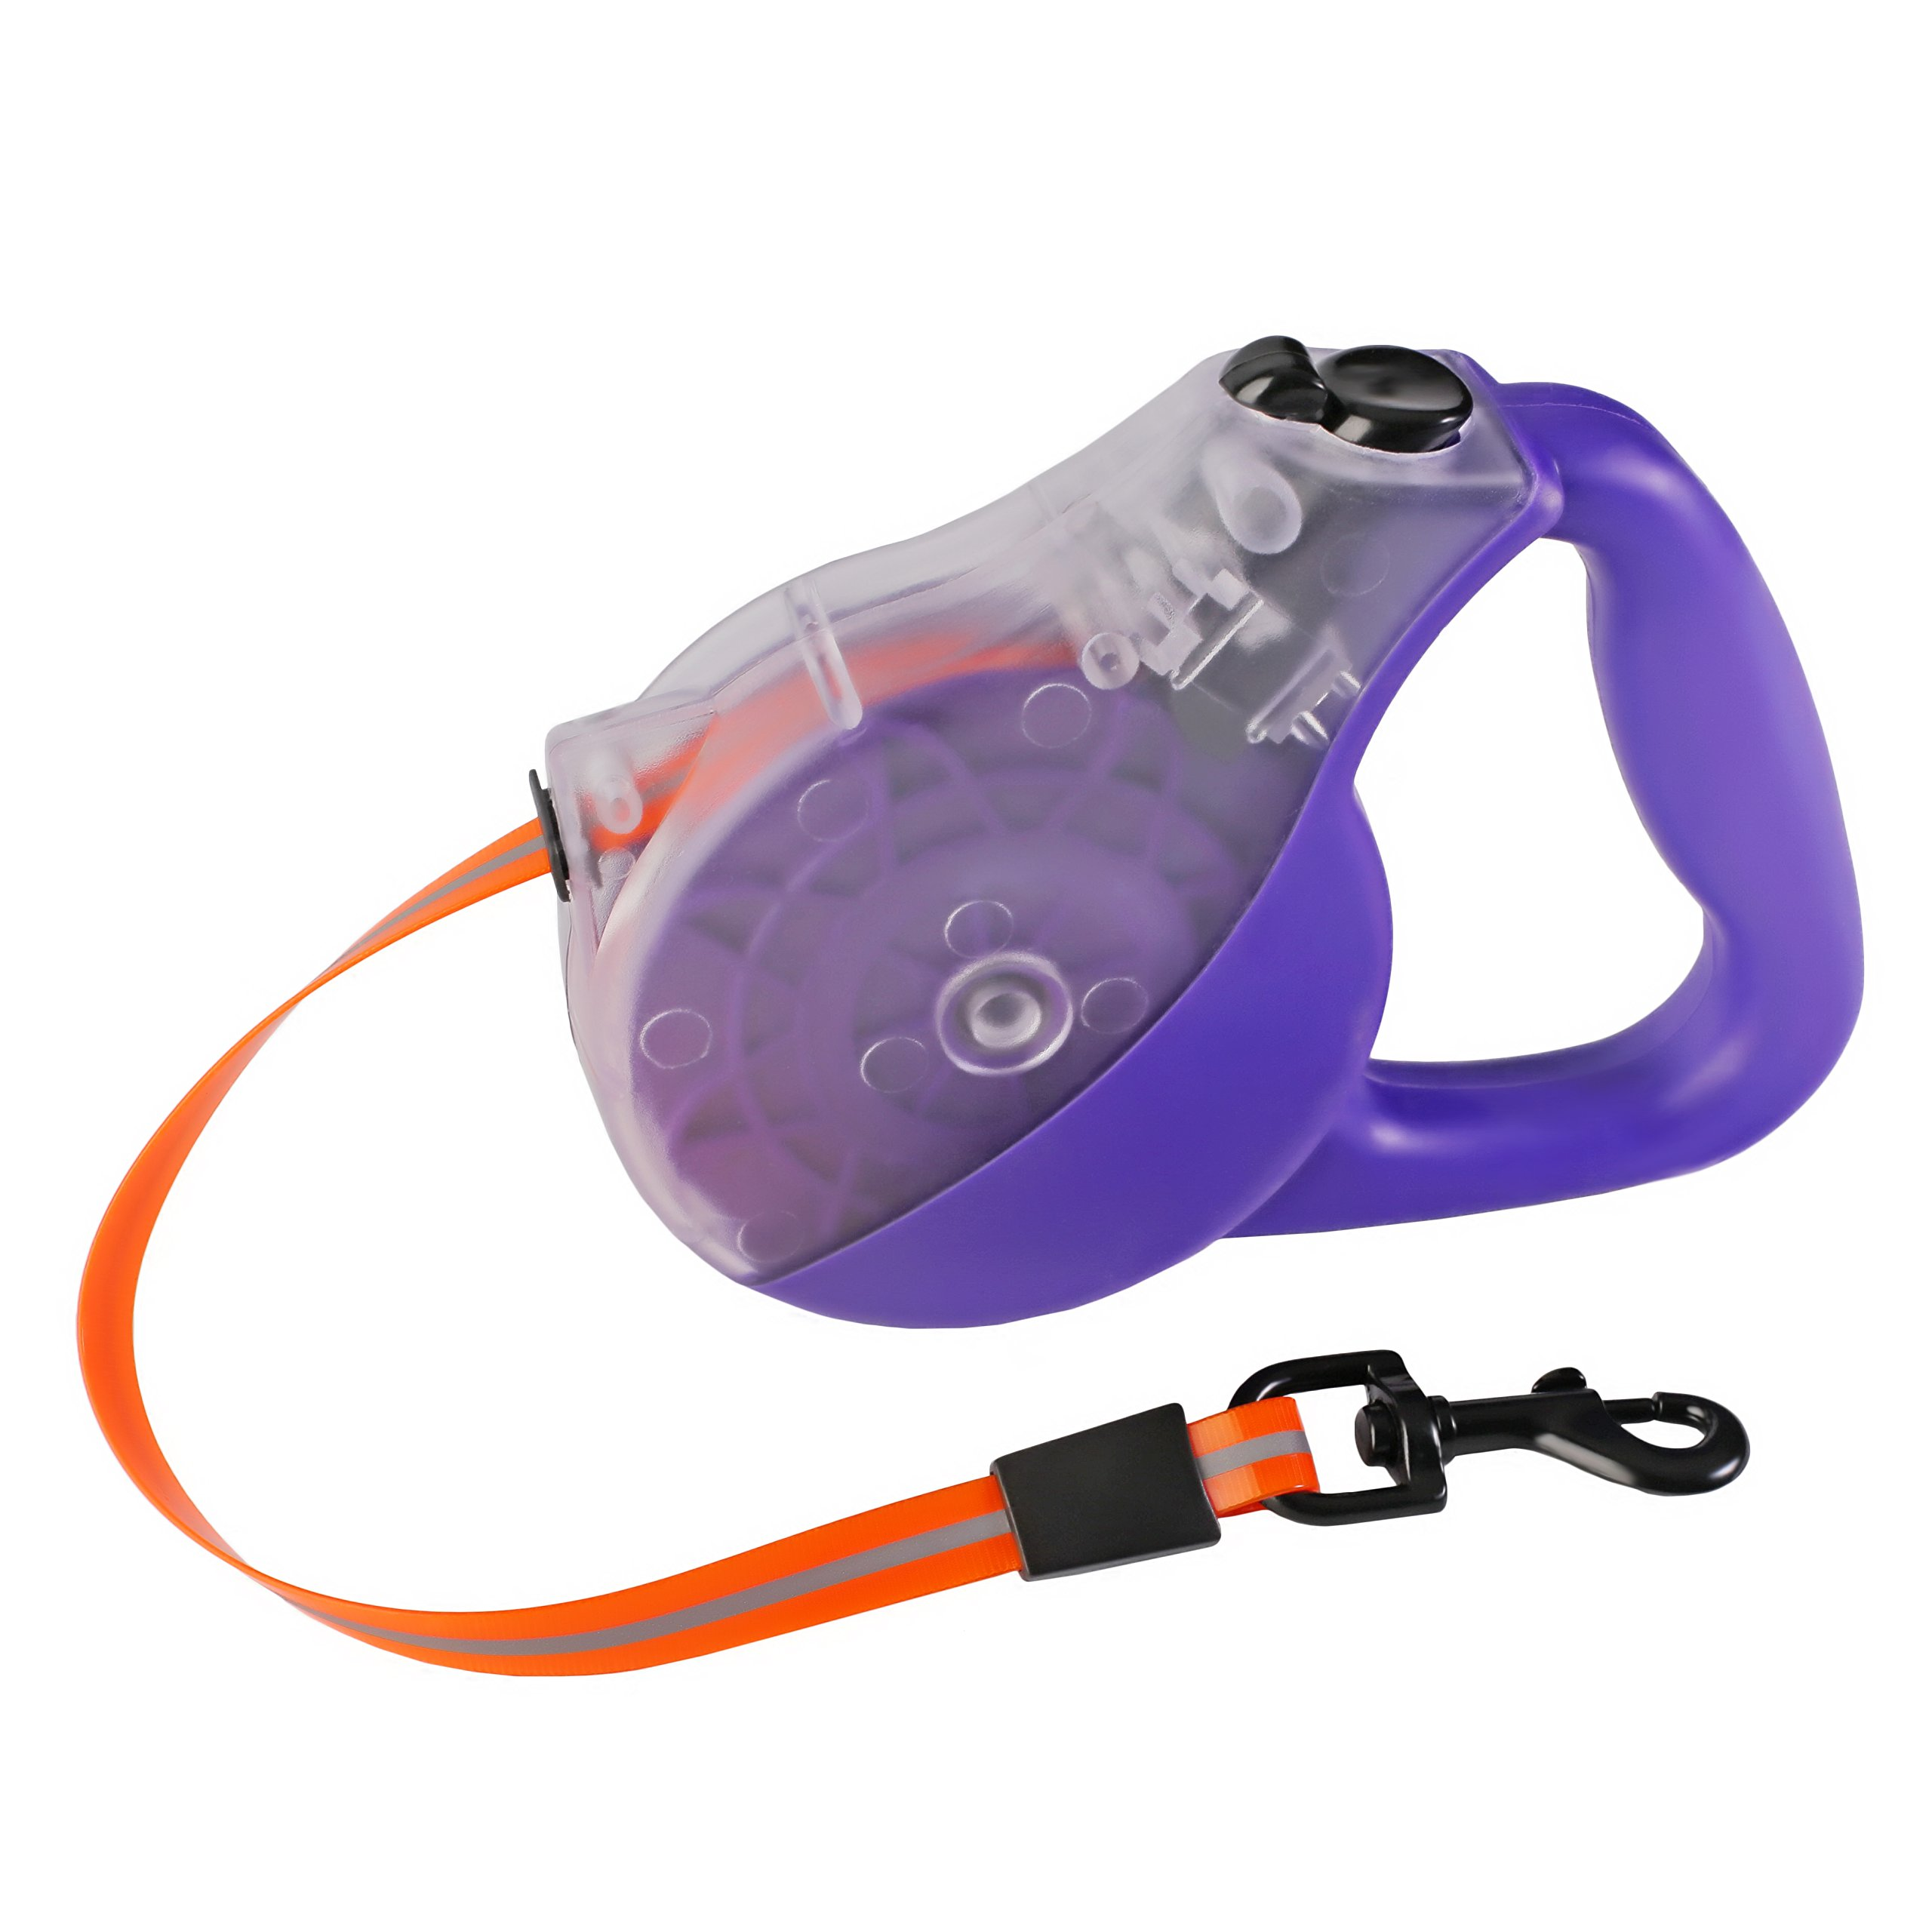 LINSISYH Retractable Dog Leash Heavy Duty, For Large or Medium Pets (purple)